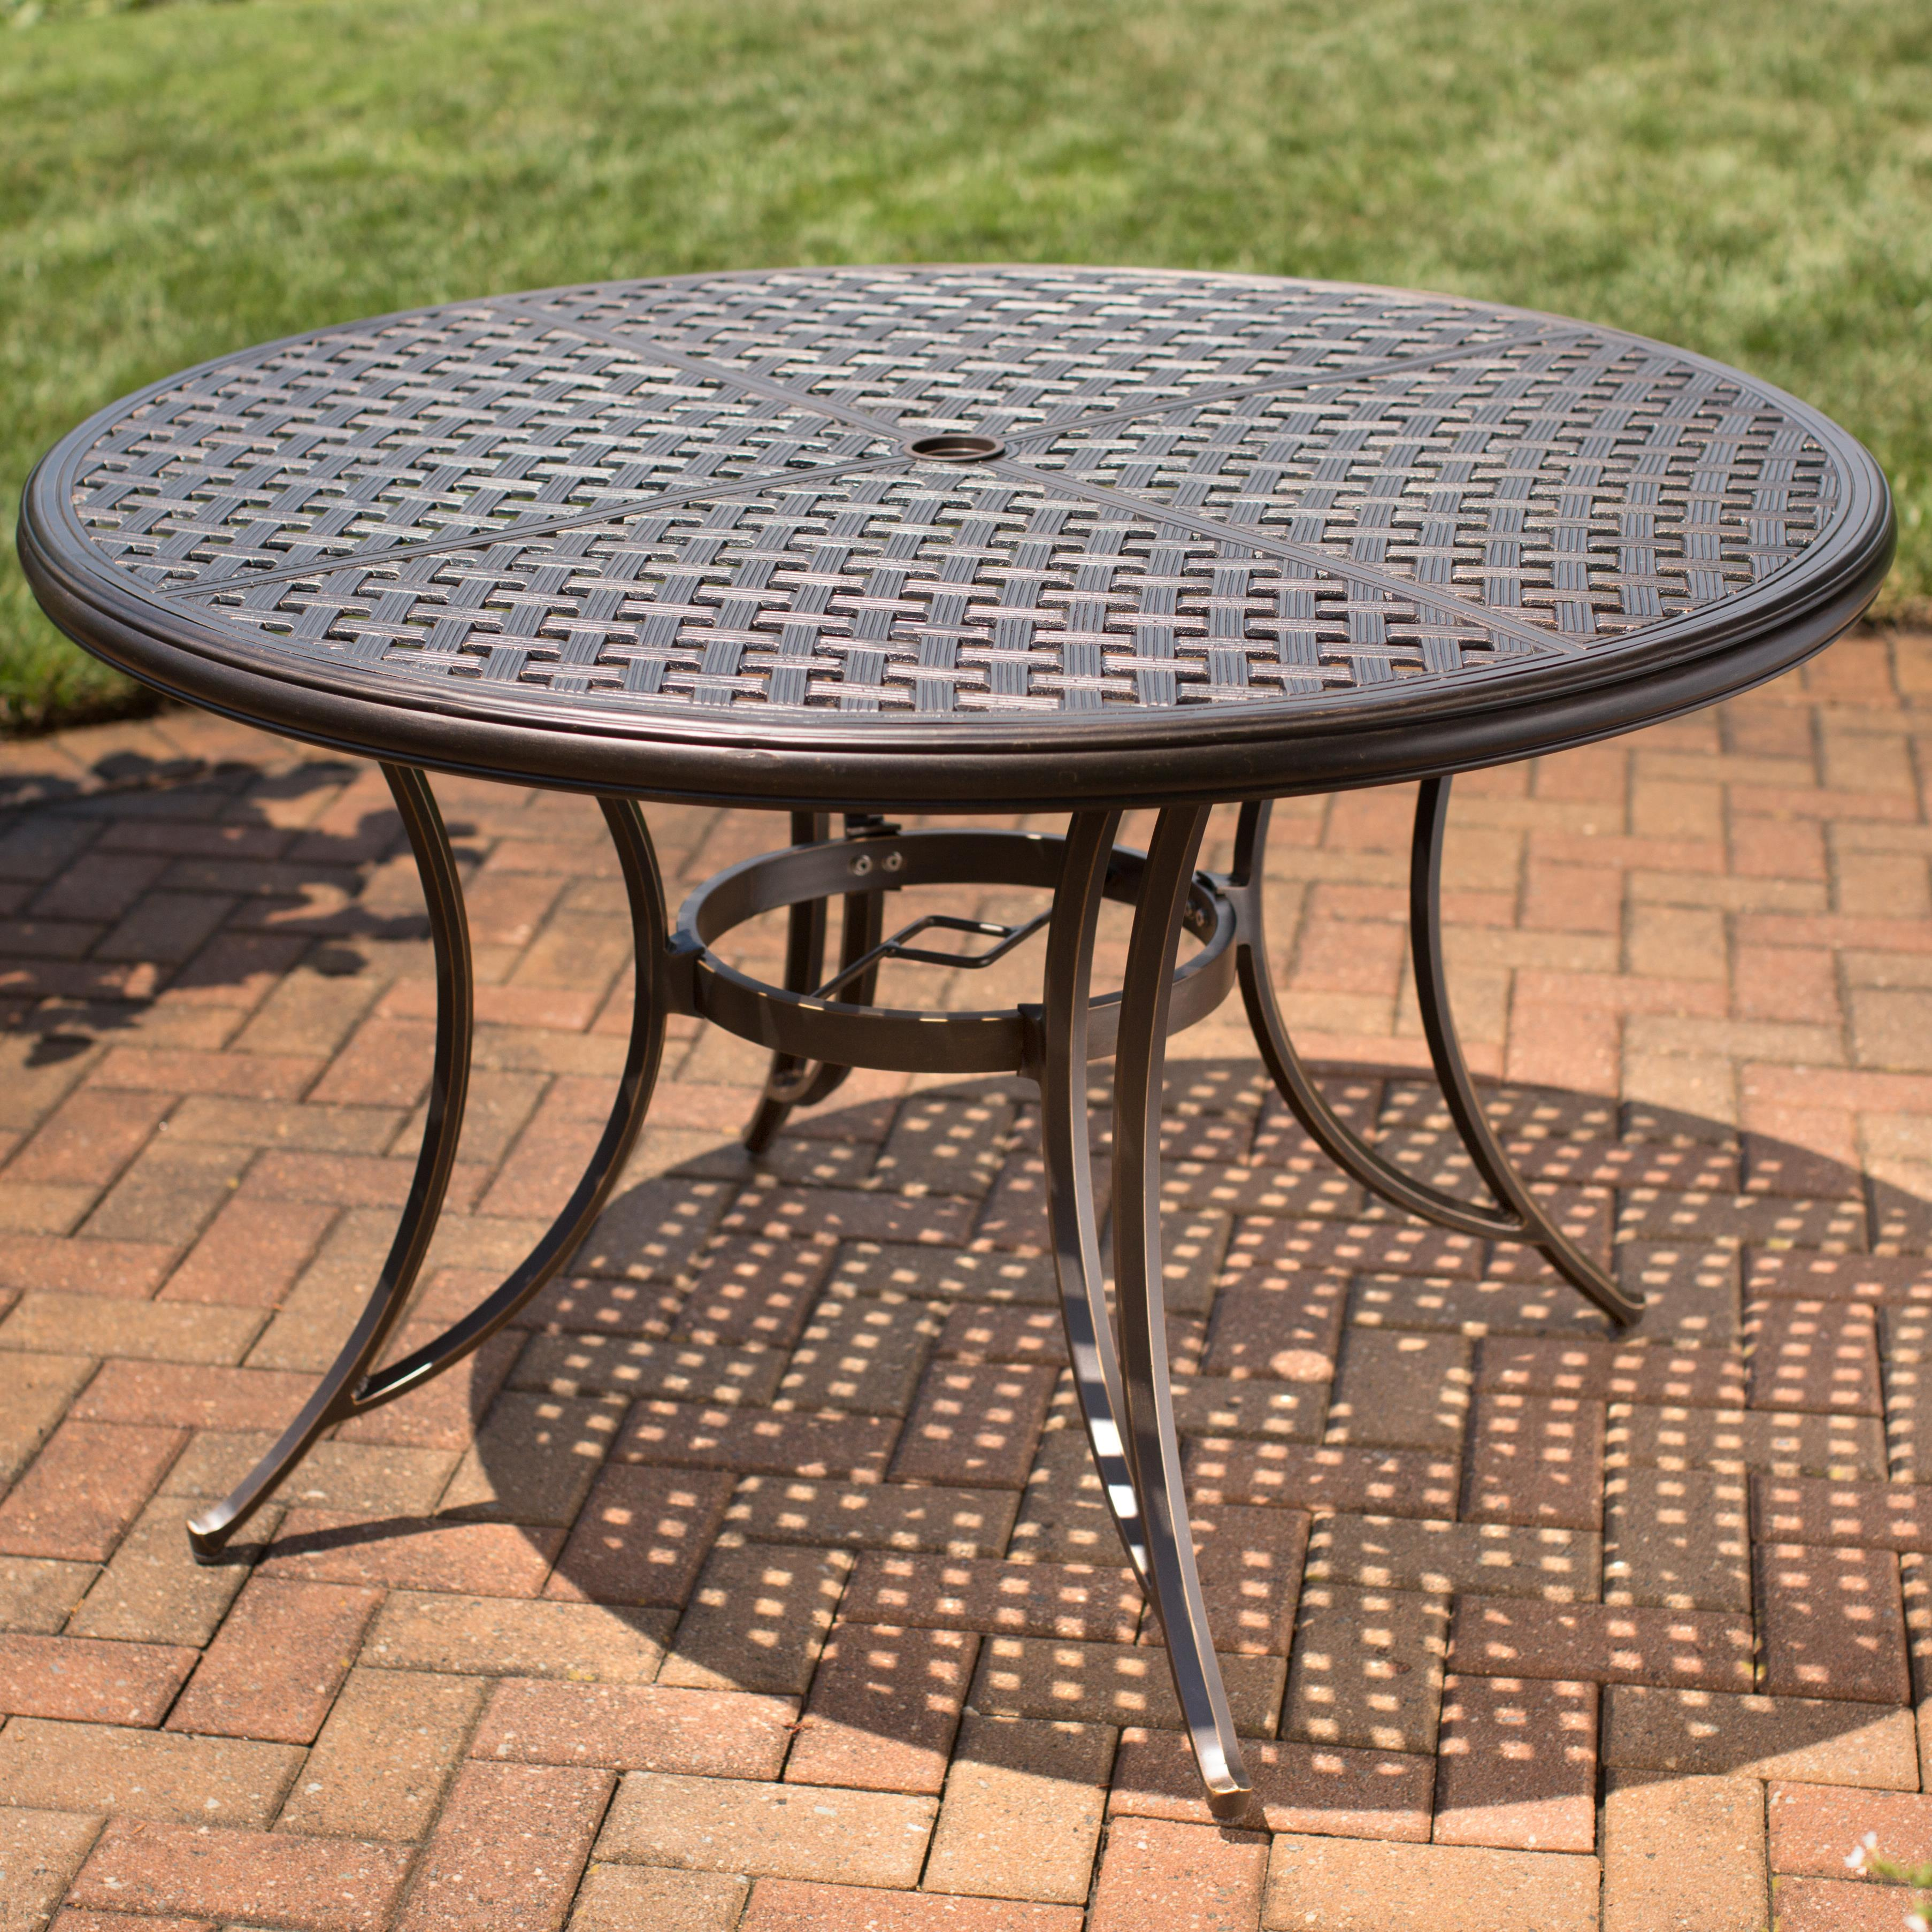 Incroyable Heritage Round Alumicast Outdoor Dining Table With Basket Weave Pattern And  Multi Step Hand Finish By Agio